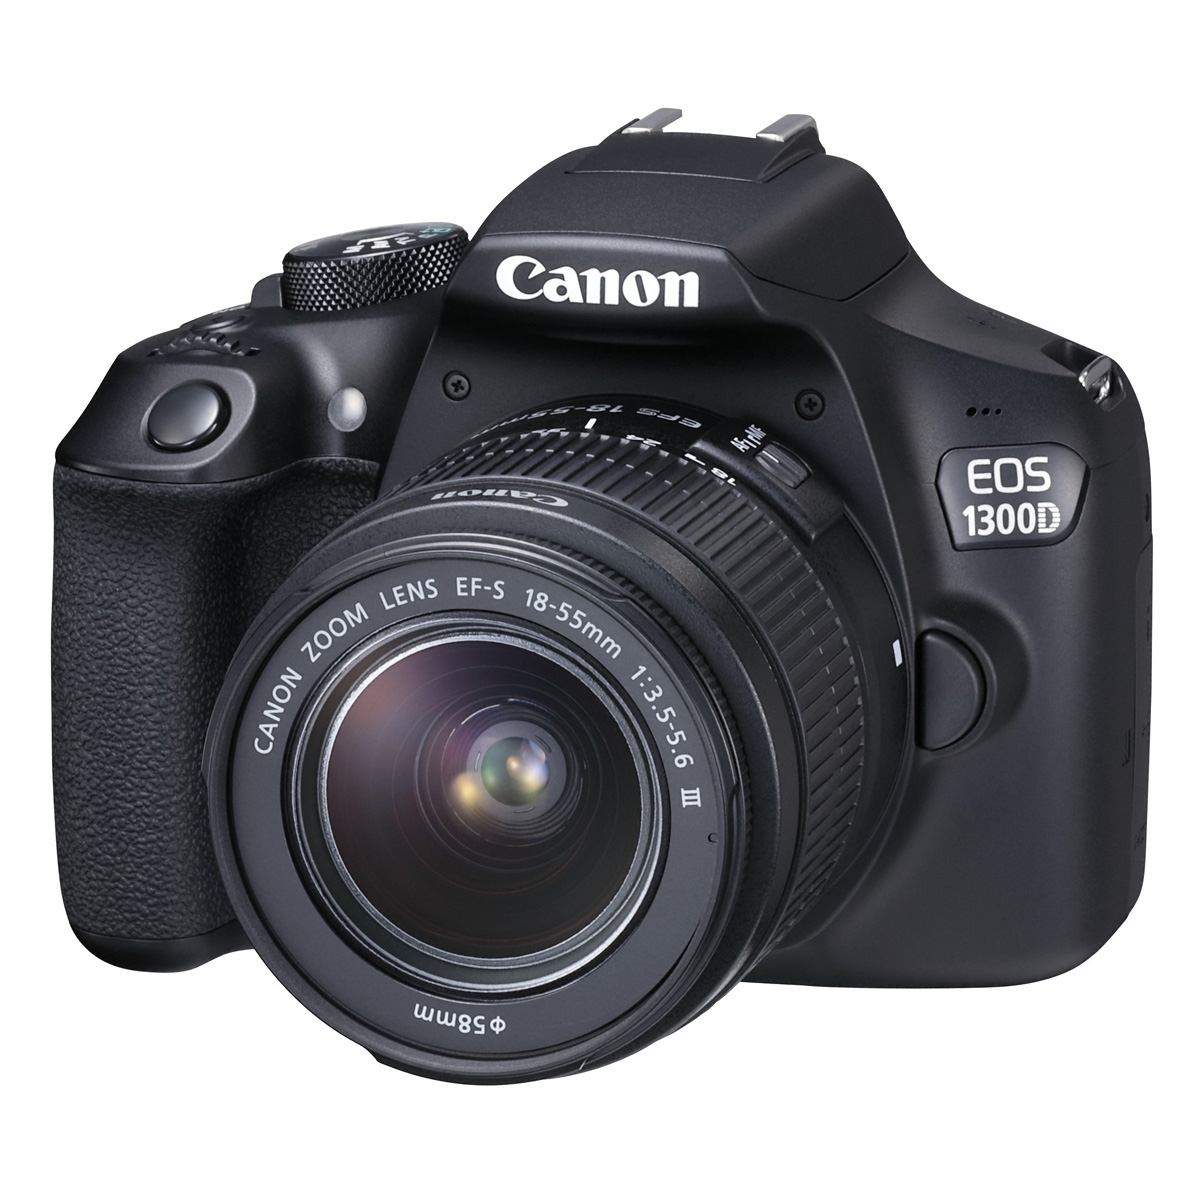 Canon EOS 1300D SLR Camera With AF S 18 55mm IS II Lens